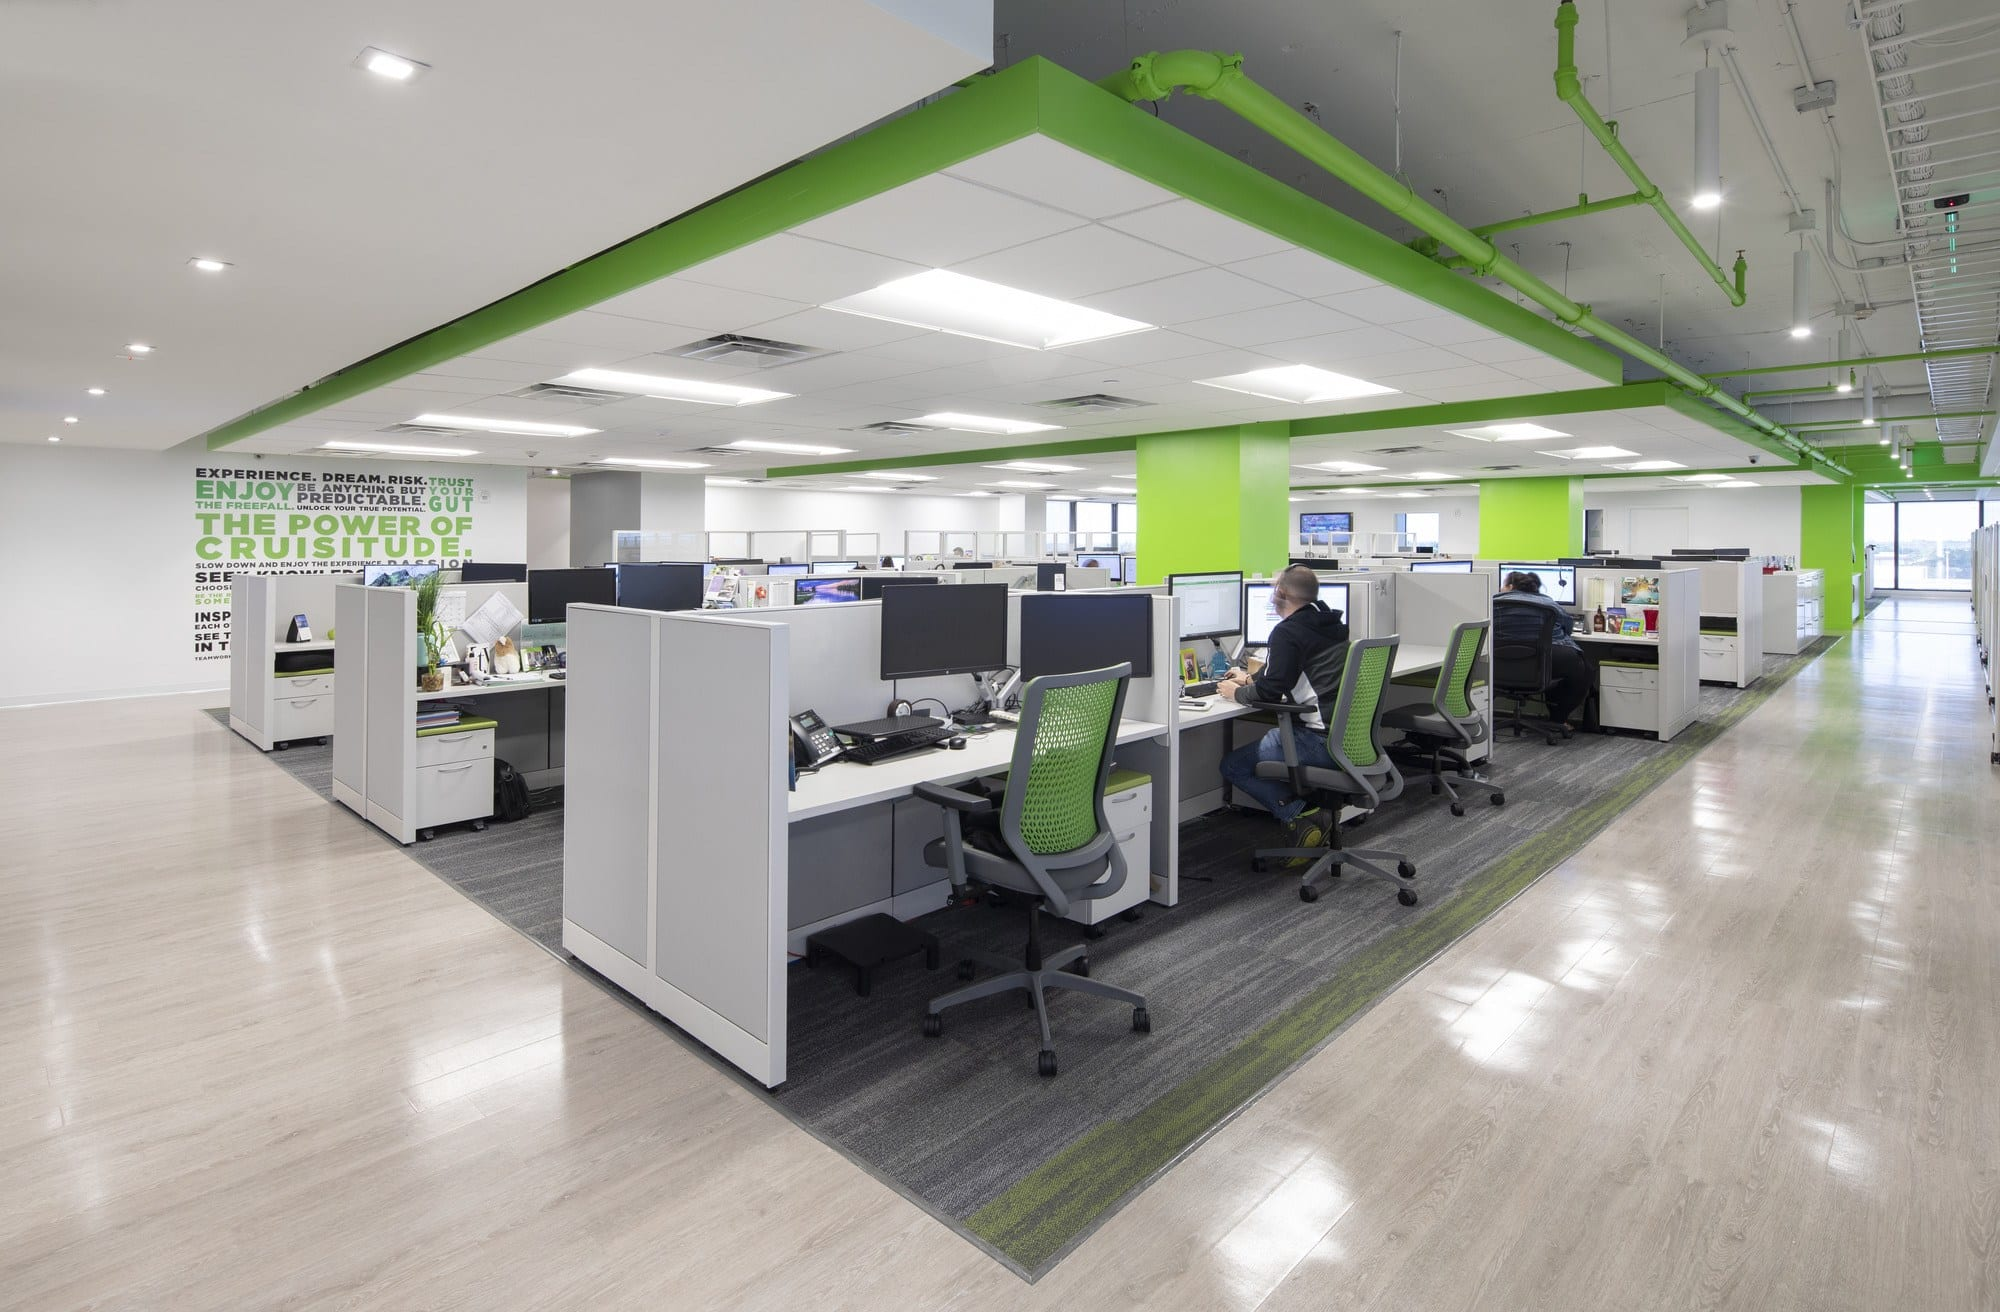 The brand's bright green color energizes and inspires Cruise Planners, Coral Springs, FL